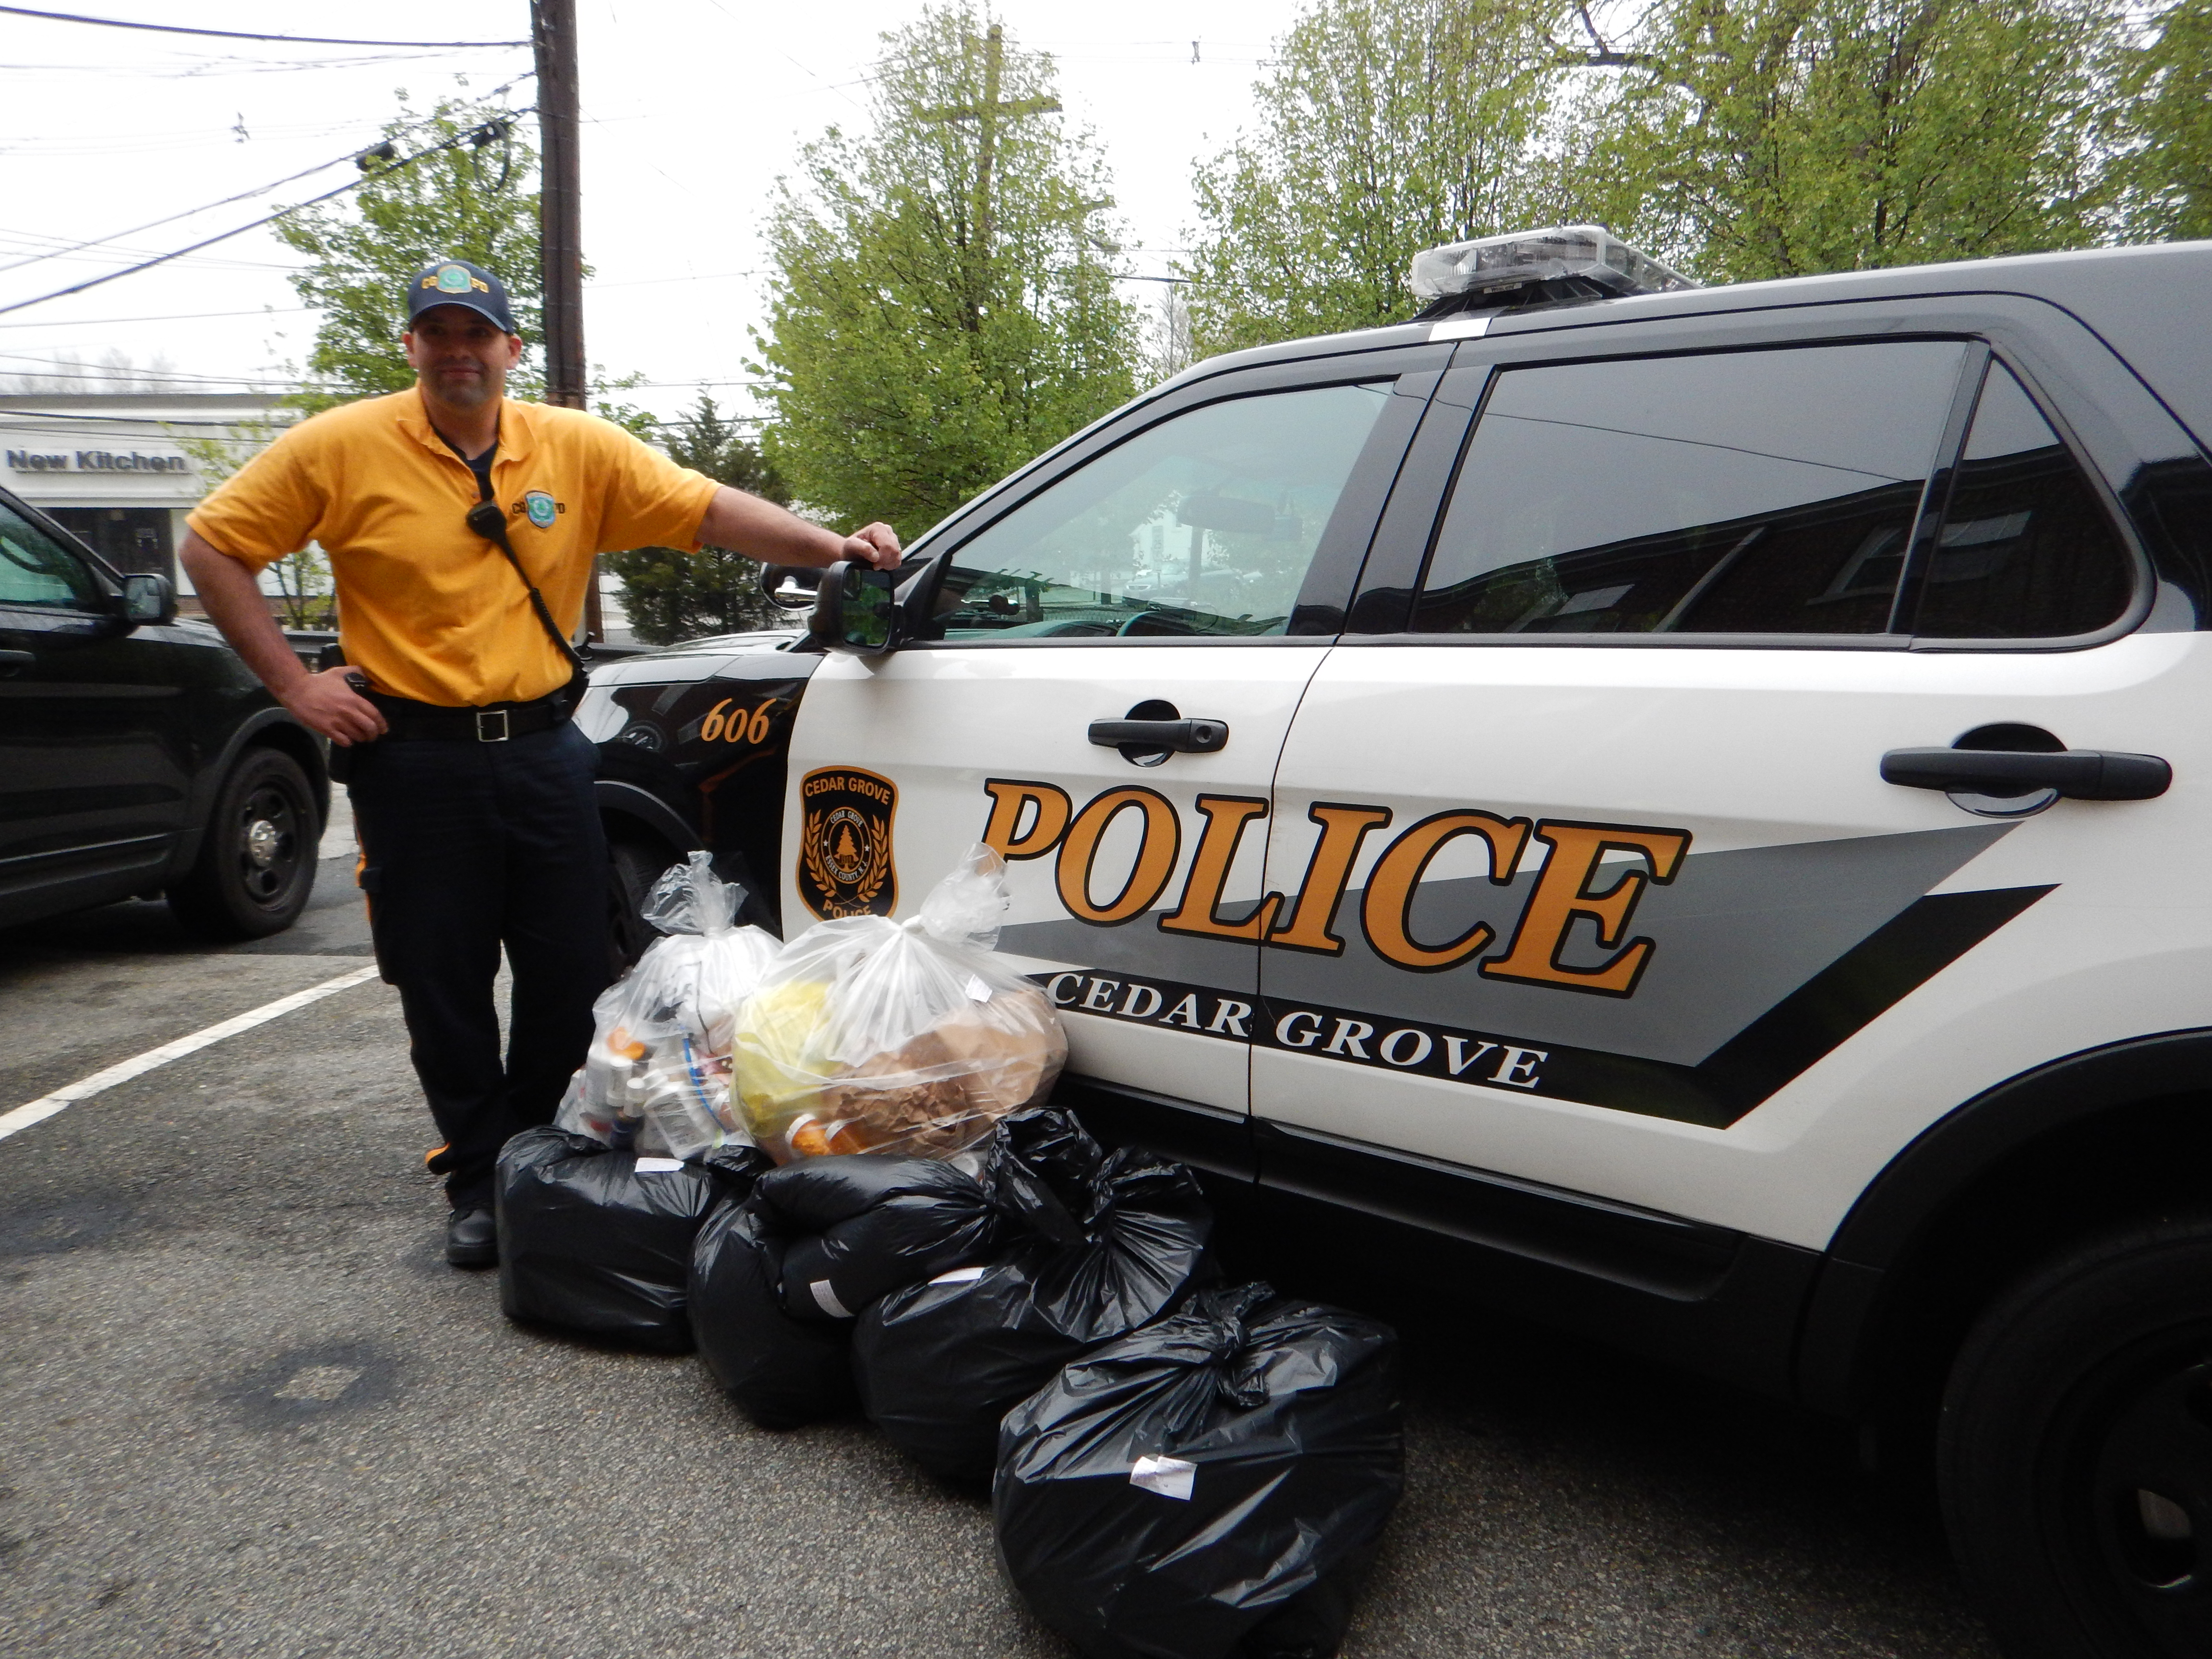 cedar grove police collect 120 pounds of surrendered